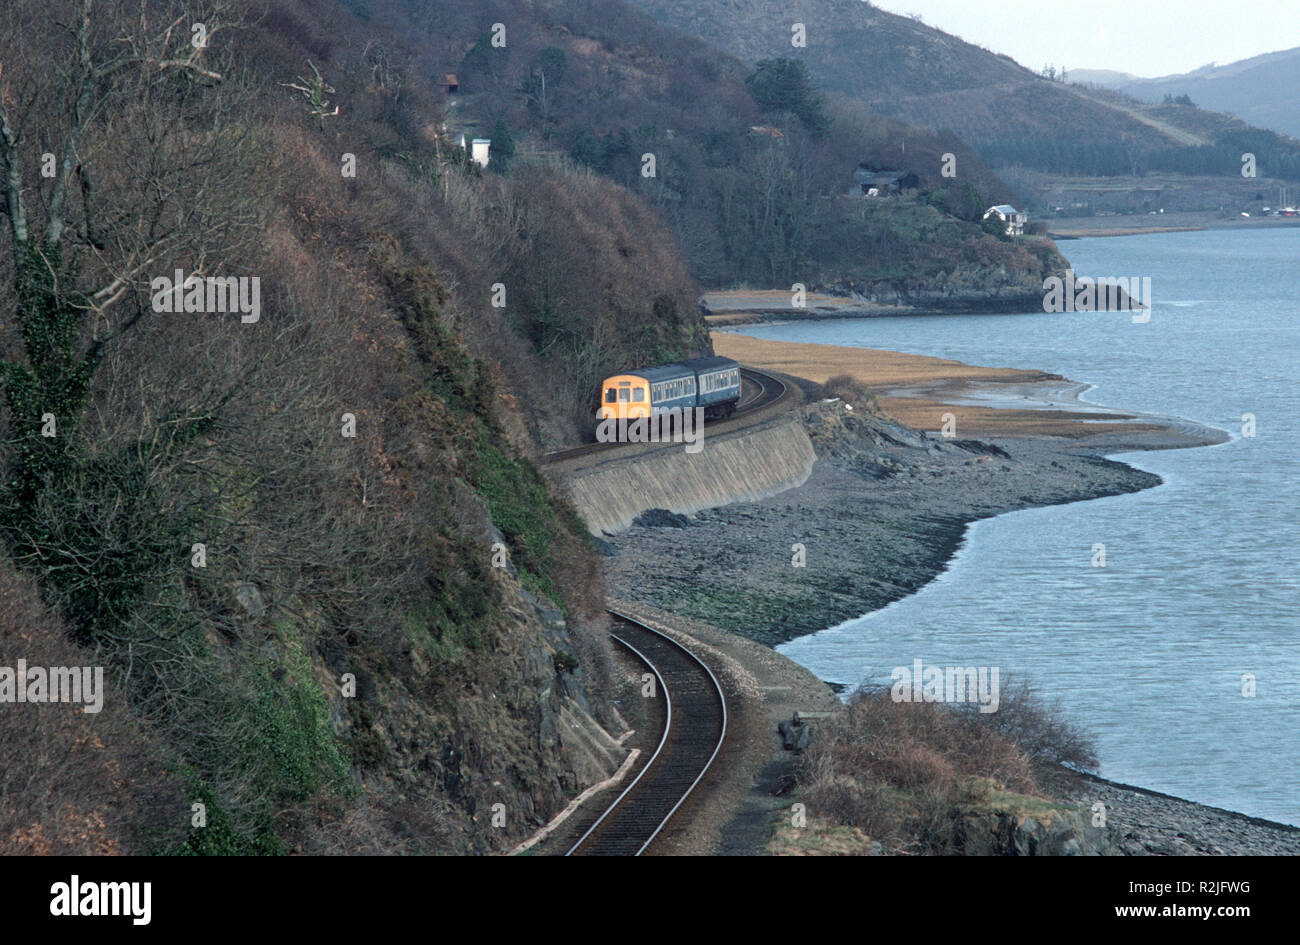 British Rail Diesel Multiple Unit, DMU train on the Dovey Junction to Pwllheli Cambrian Coast railway line, Dovey River, Mid Wales, Great Britain - Stock Image